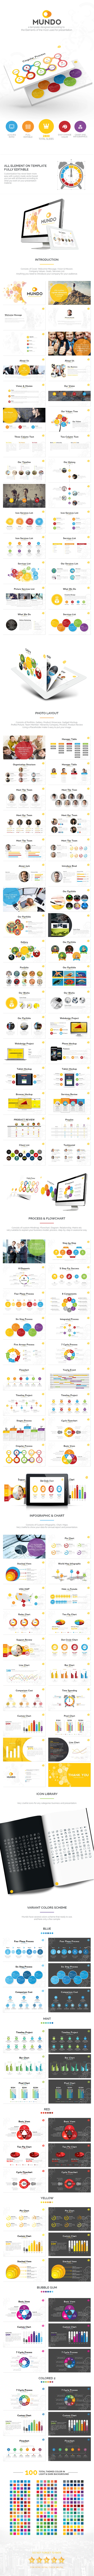 Mundo Powerpoint - Conquered Your Presentations - Business PowerPoint Templates